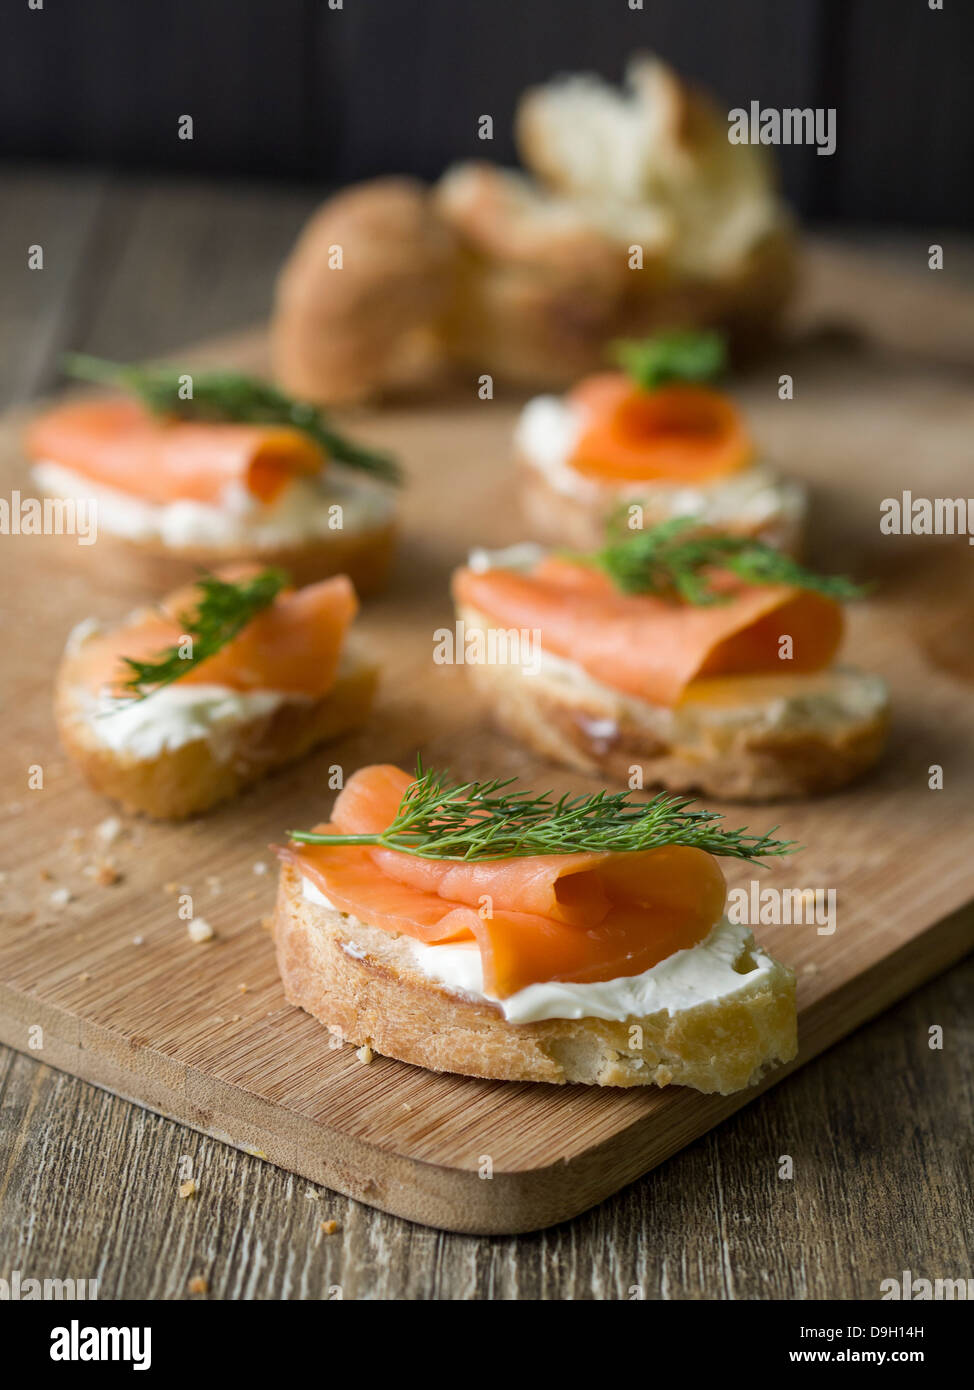 Smoked salmon sandwich on homemade baguette. - Stock Image